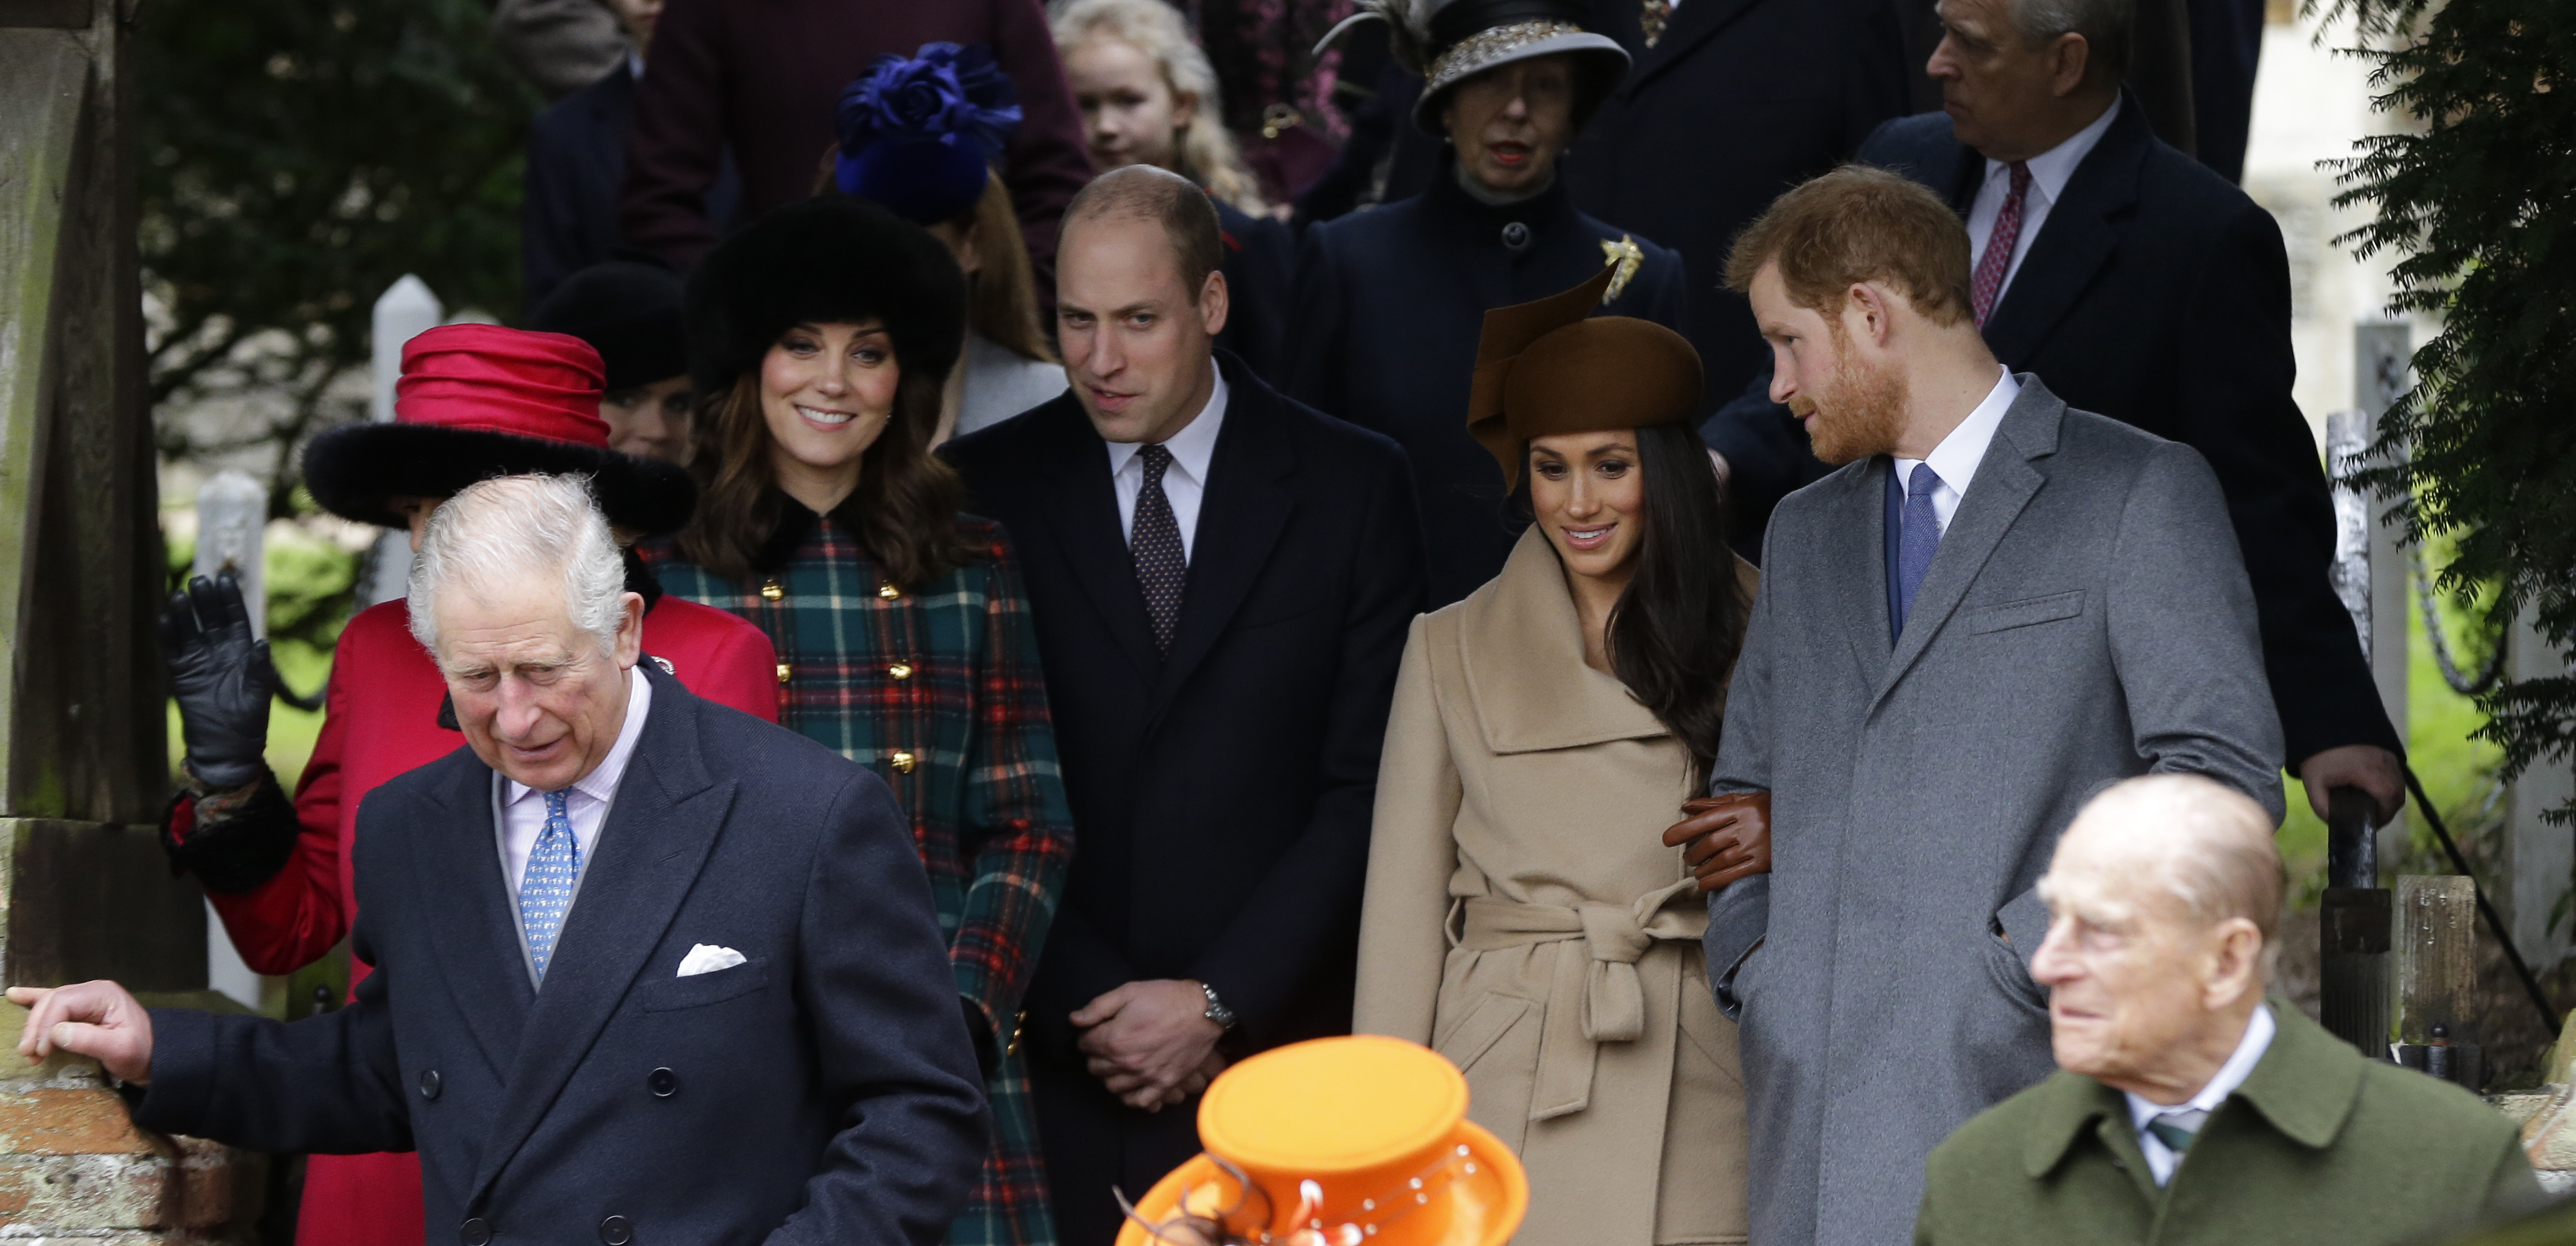 Britain's Prince Charles, left, Kate, Duchess of Cambridge, 2nd left, Price William, Meghan Markle, fiancee of Prince Harry, 2nd right and Prince Philip, right, as they wait for the Queen to leave by car following the traditional Christmas Day church service, at St. Mary Magdalene Church in Sandringham, England, Monday, Dec. 25, 2017. (AP Photo/Alastair Grant)